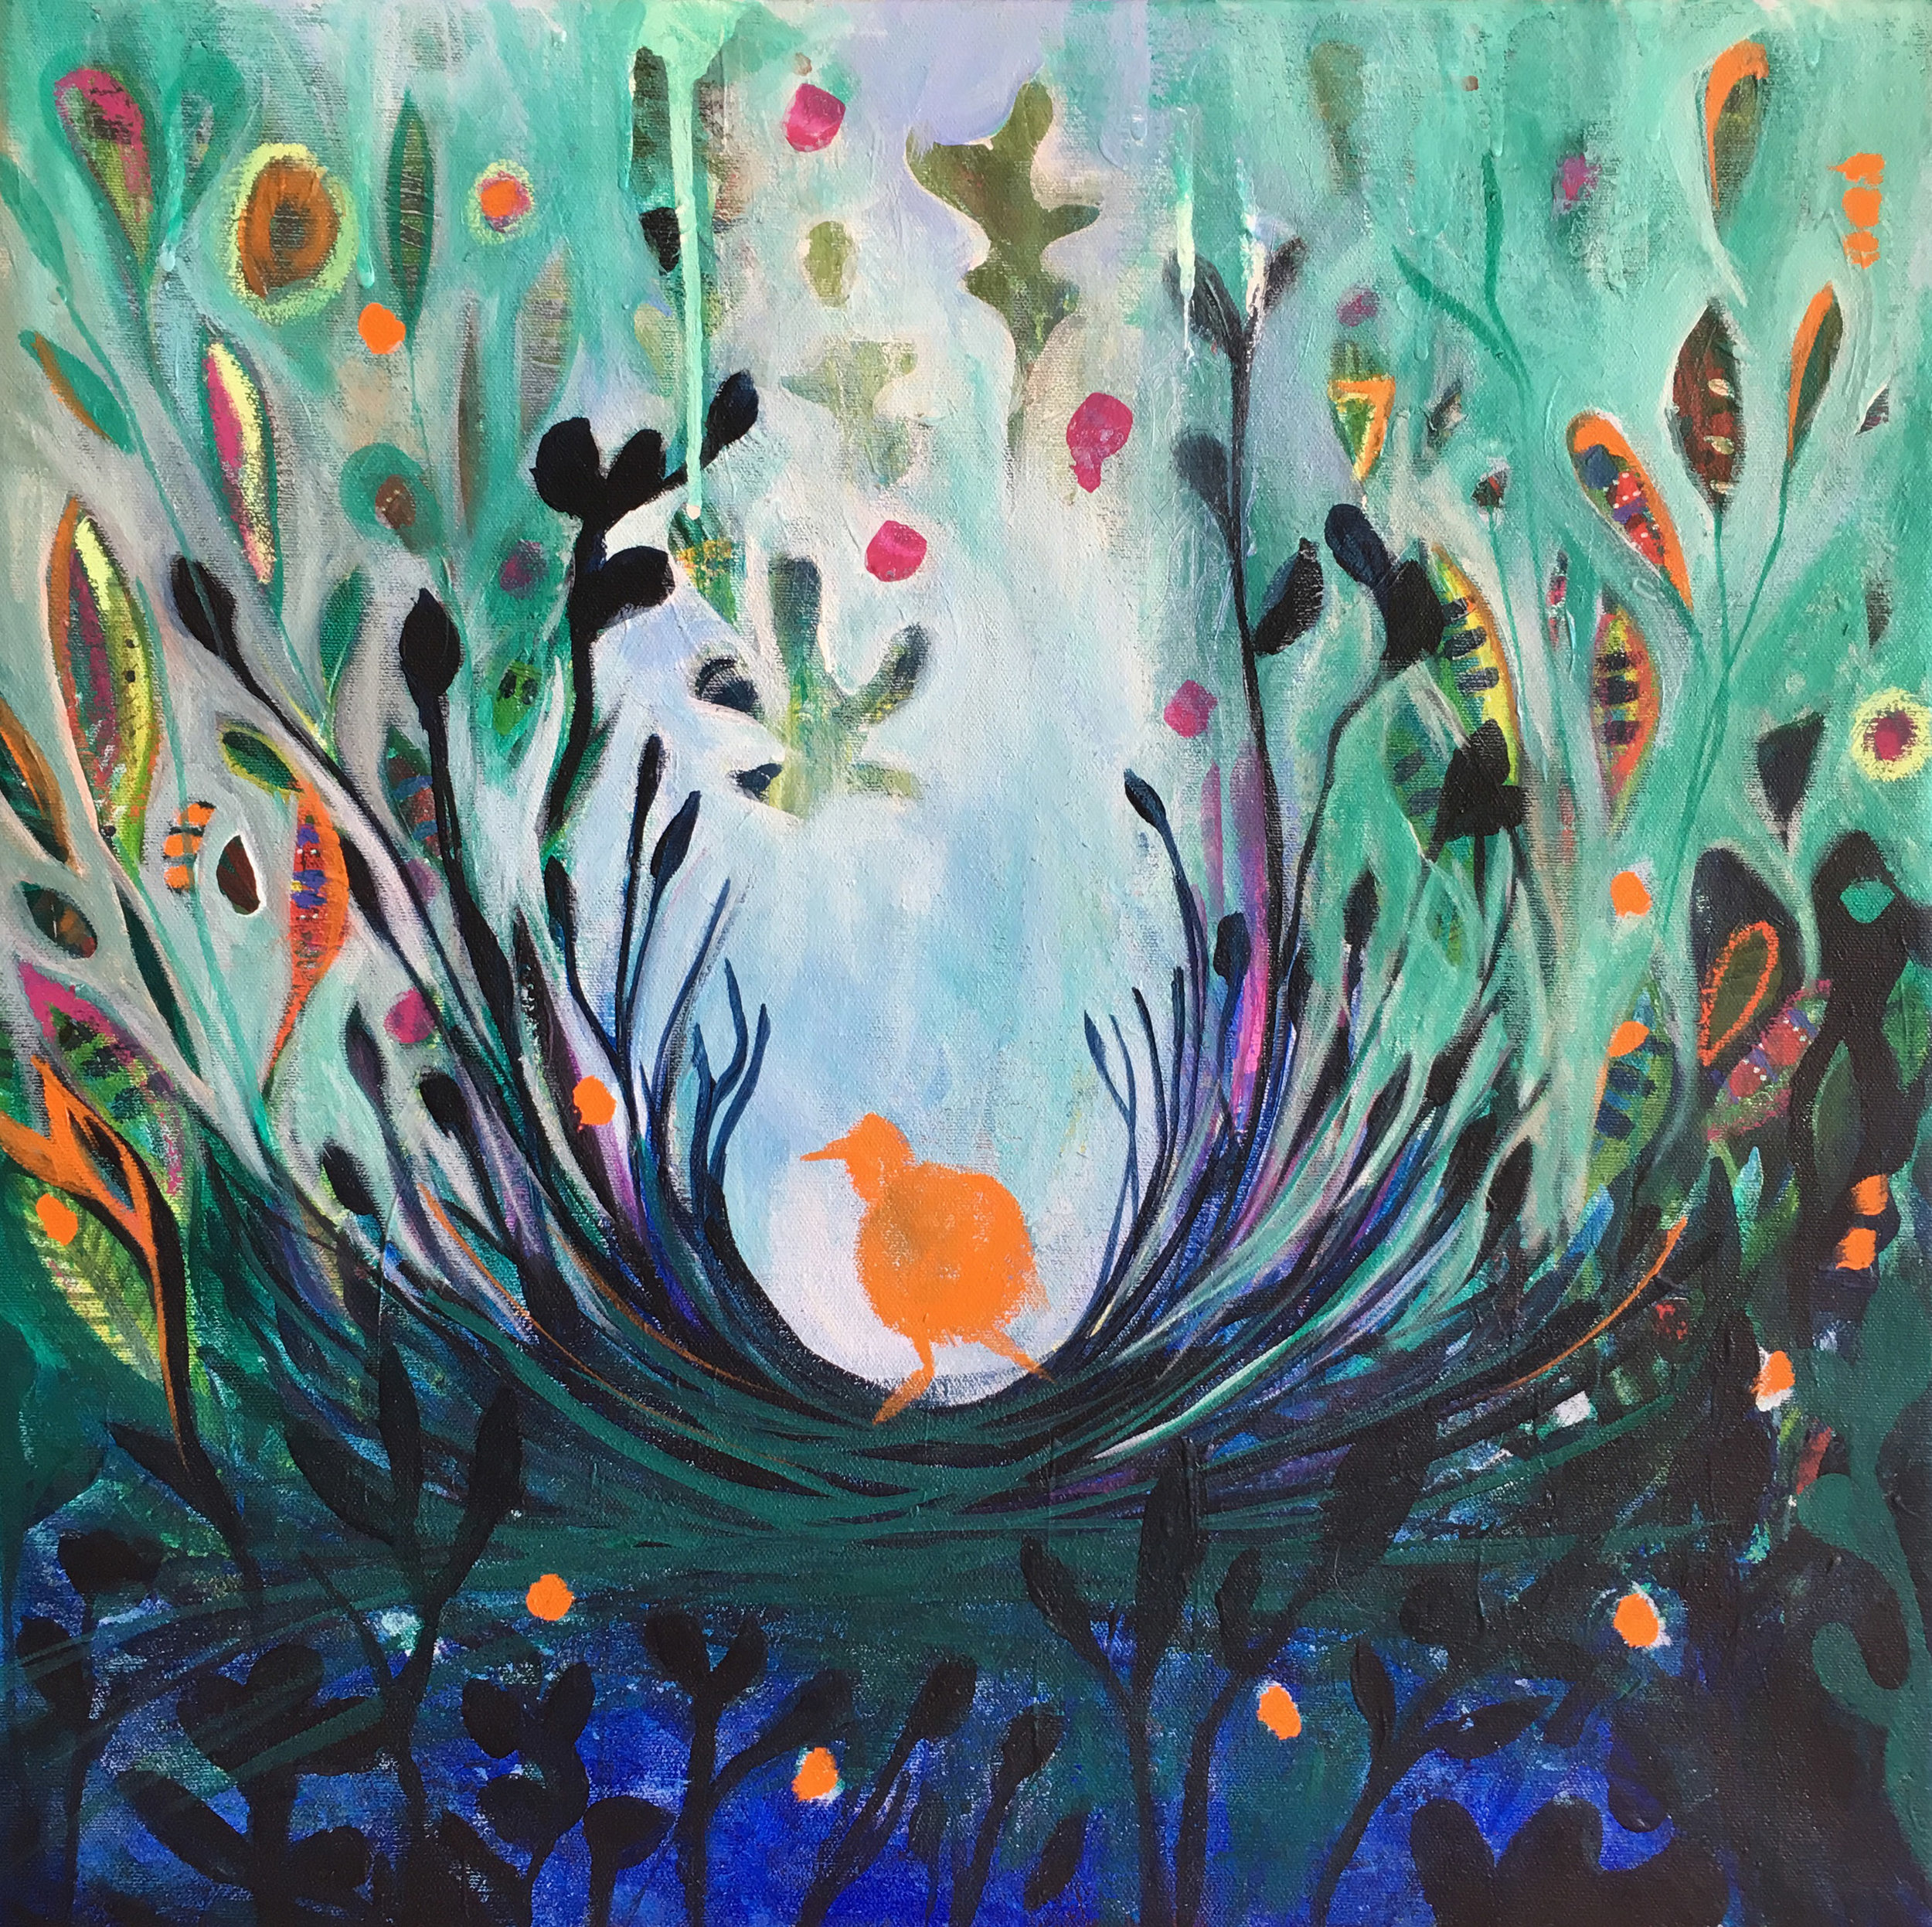 'Morning Bower' - Work in progress